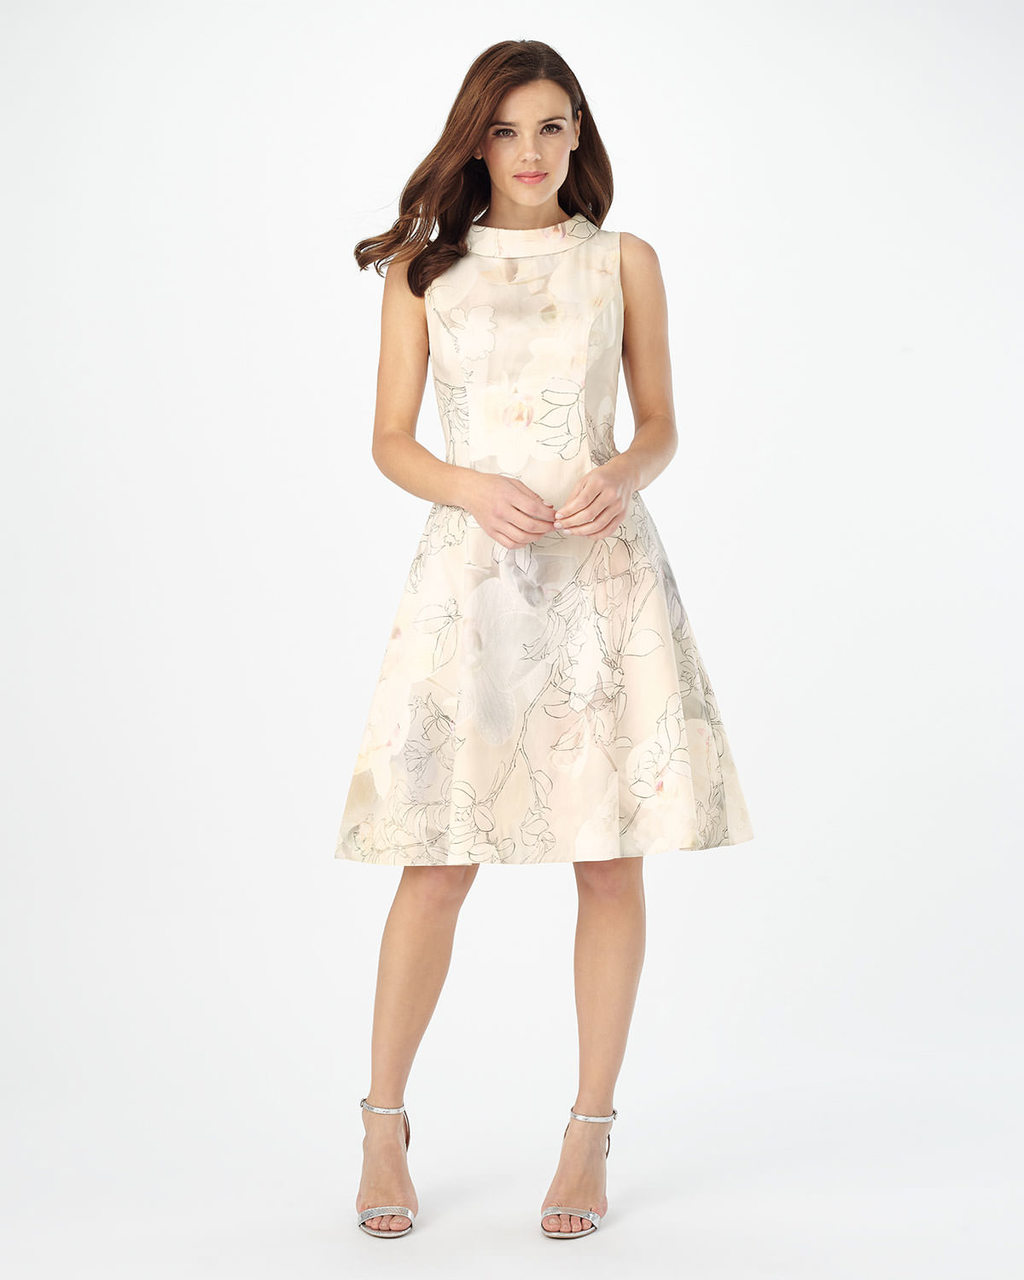 Kirsty Floral Print Dress - sleeve style: sleeveless; neckline: high neck; predominant colour: ivory/cream; occasions: evening; length: on the knee; fit: fitted at waist & bust; style: fit & flare; fibres: cotton - 100%; sleeve length: sleeveless; pattern type: fabric; pattern: florals; texture group: brocade/jacquard; season: s/s 2016; wardrobe: event